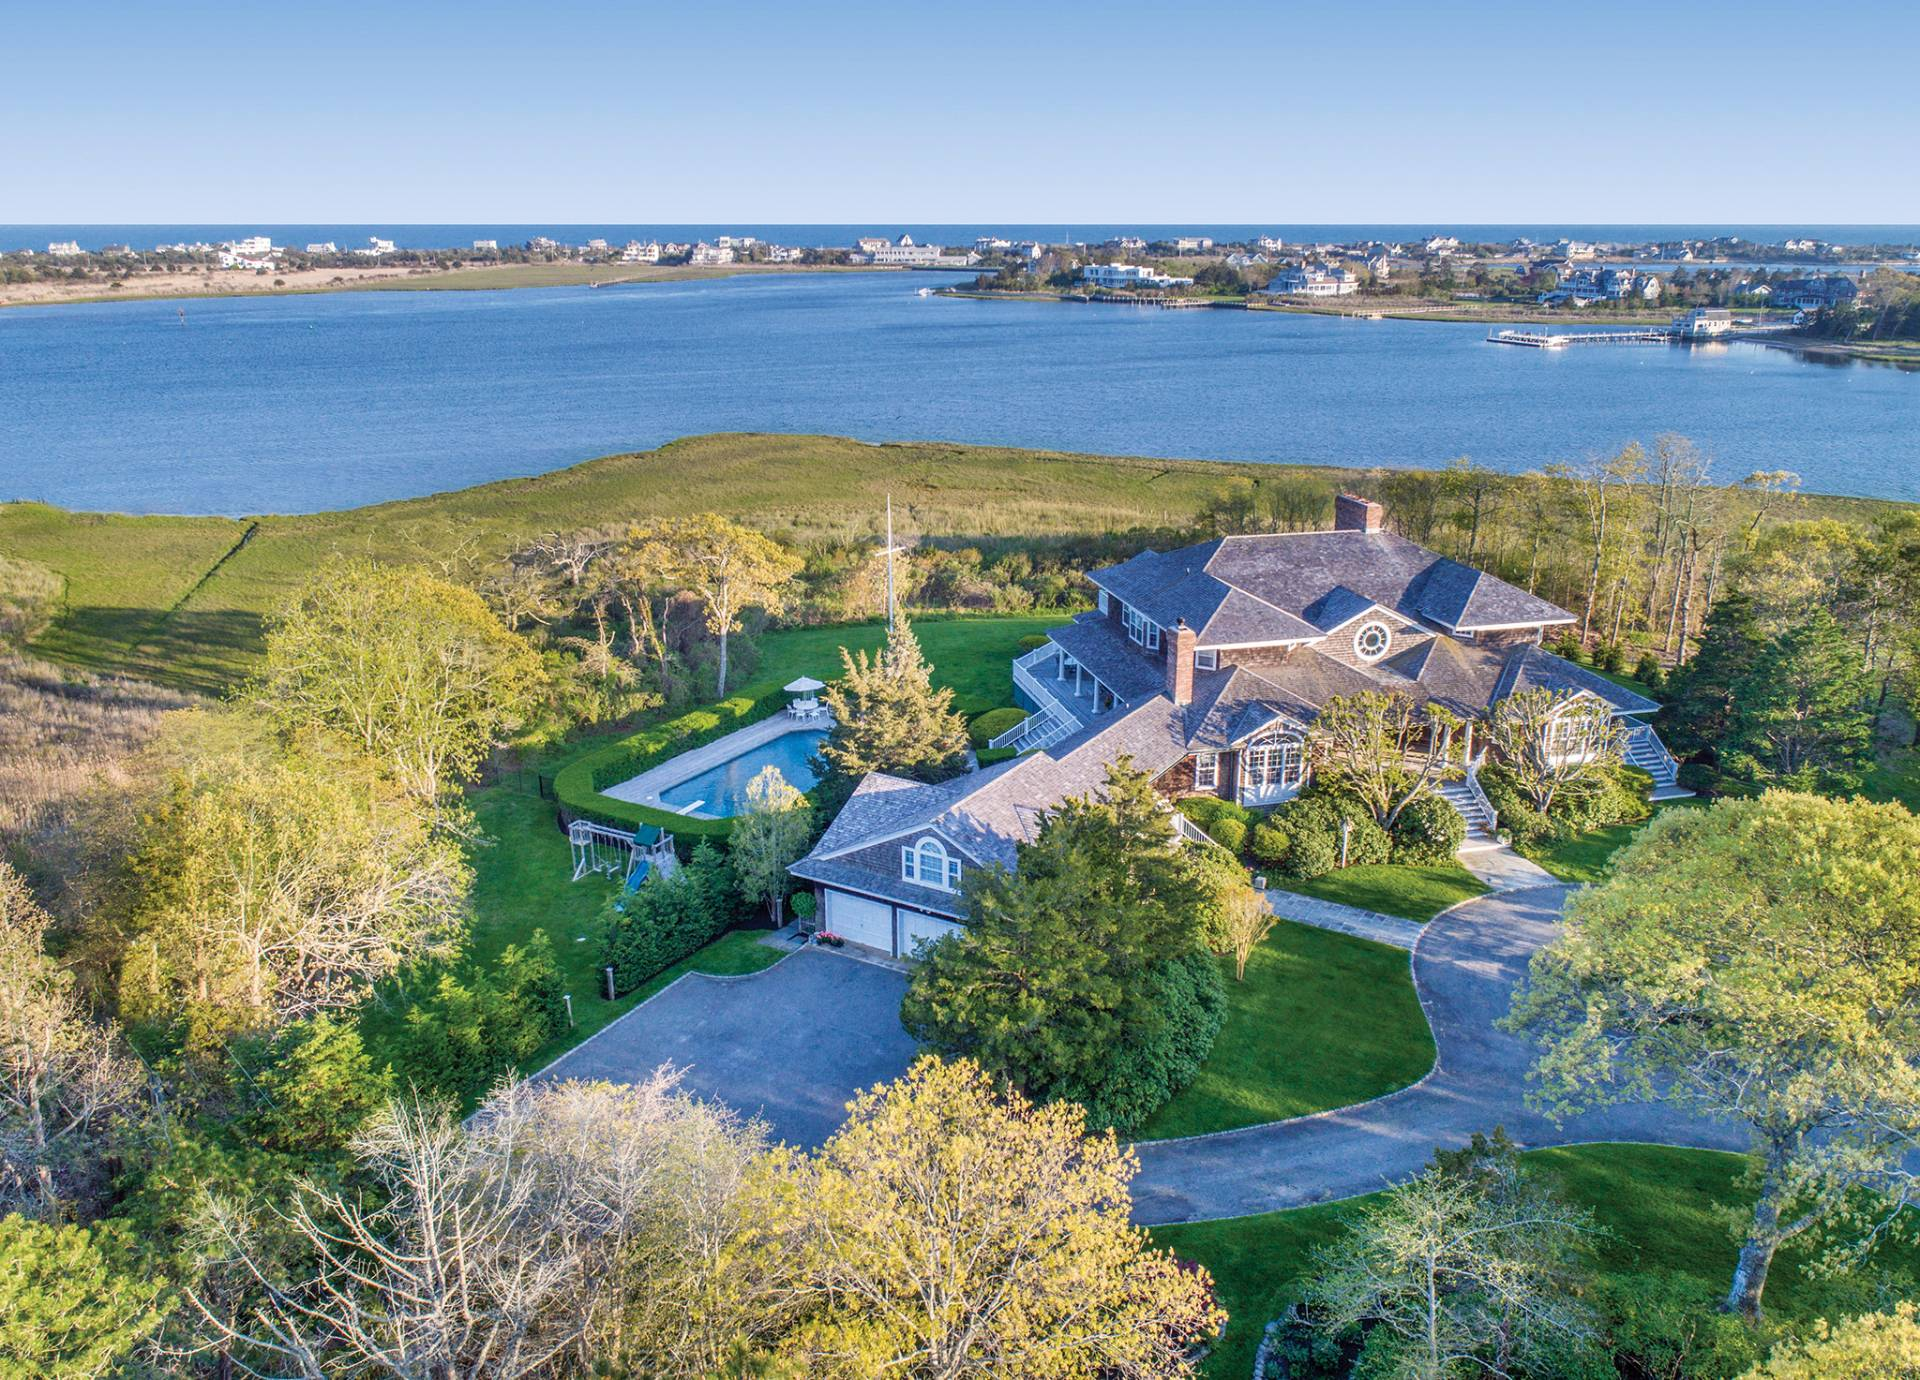 Single Family Home for Sale at Exceptional Waterfront Location. Exceptional Price. 32 Penniman Point Road, Quogue, New York